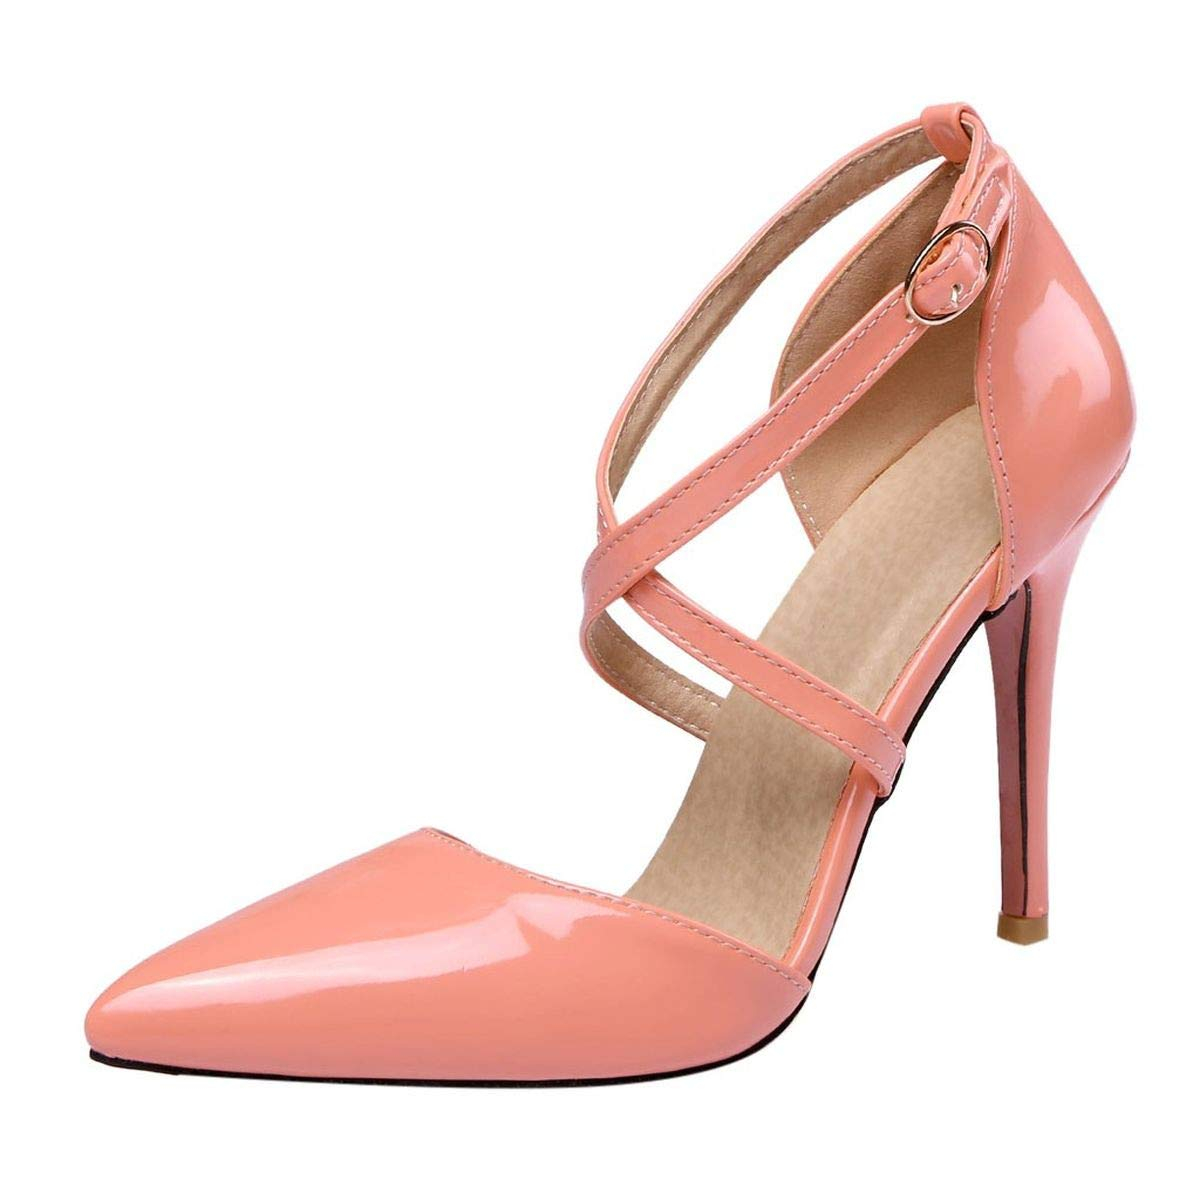 Women's Pointed Toe High Heel Cross Ankle Strap D'Orsay Leather Dress Pumps Wedding Bridal Evening Party Dress Shoes (Pink, 8)